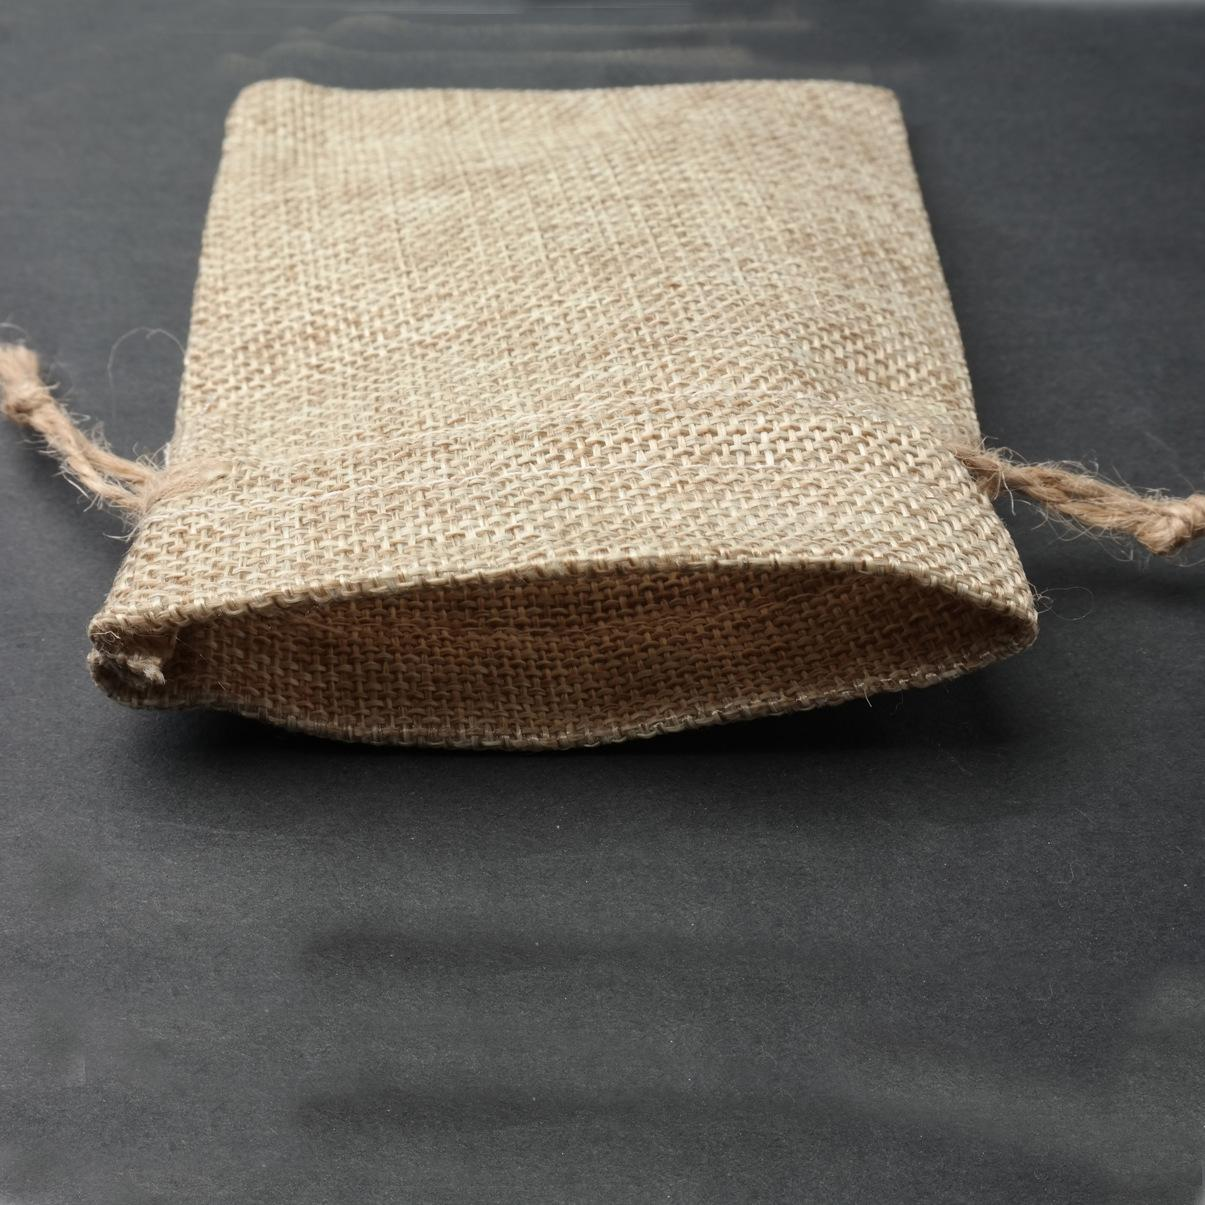 2018 Gift Bag Jute Hessian Packing Storage Linen Burlap Jewelry